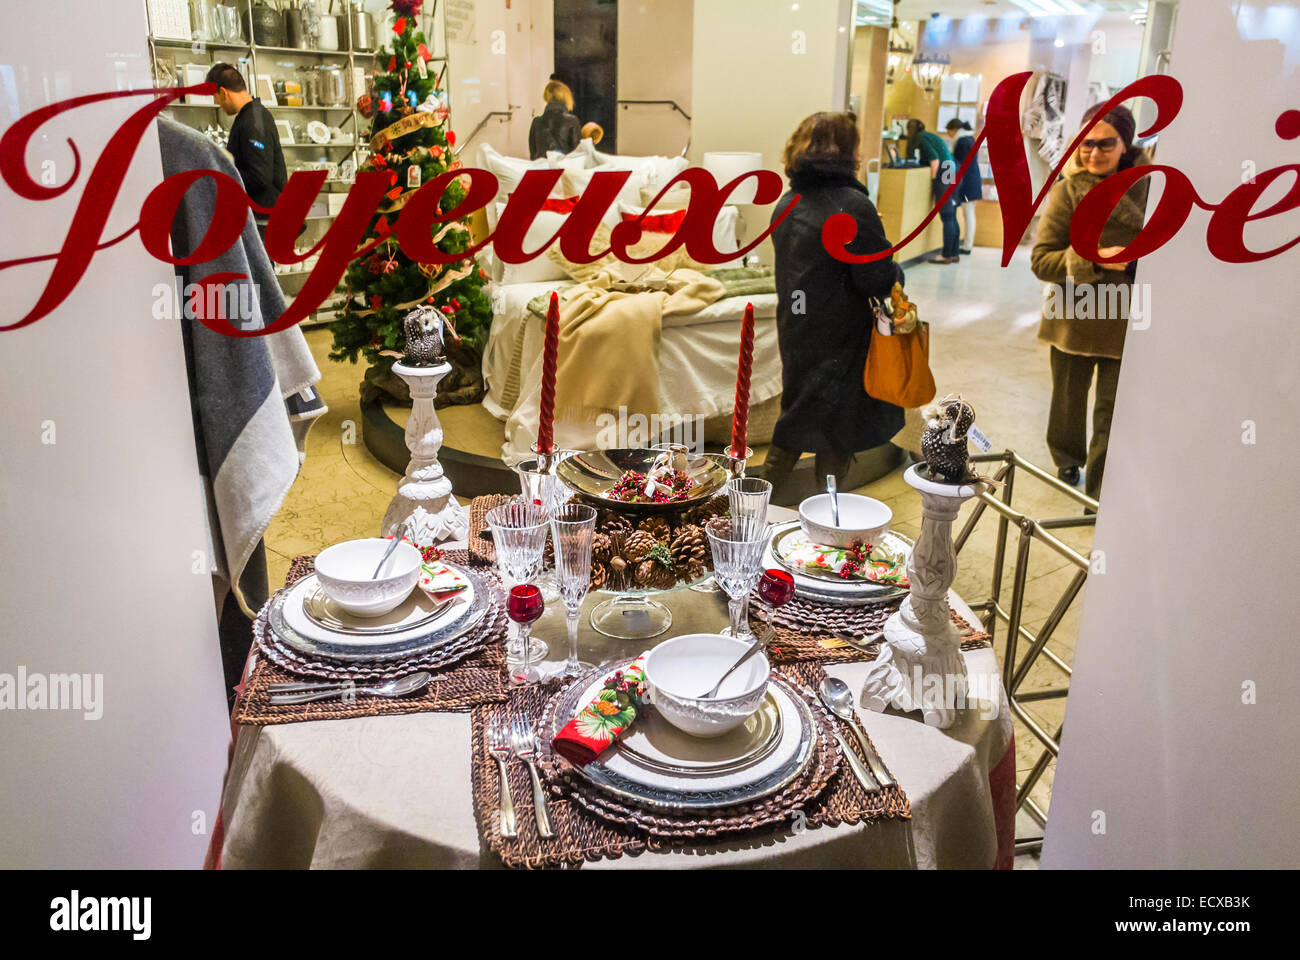 Paris France Inside Shop Front Window Display Christmas Table Setting Decorations Zara Home Sign Merry In French